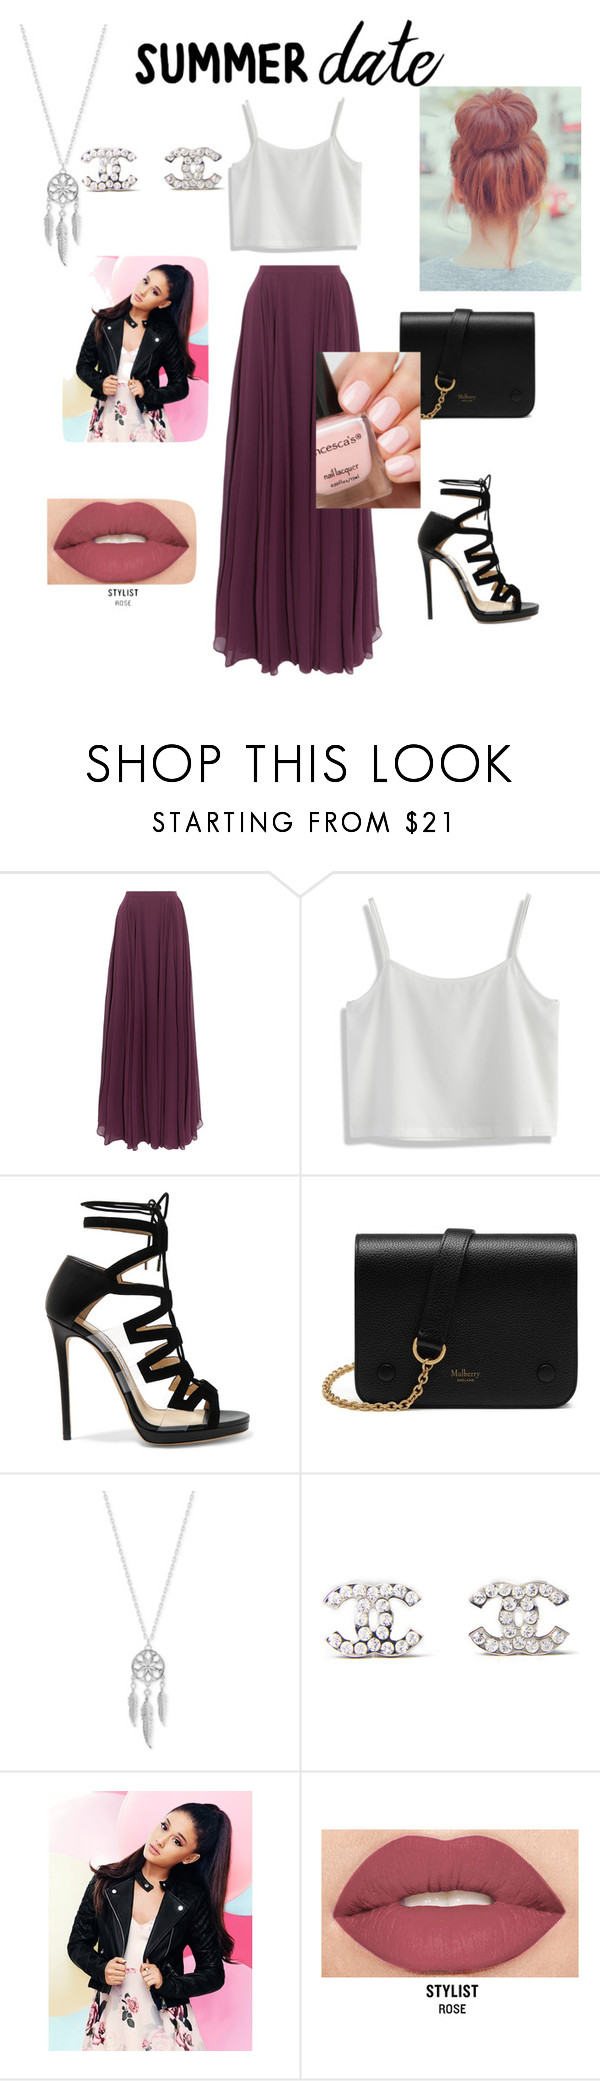 """""""Summer date"""" by kktempolove2016 ❤ liked on Polyvore featuring Halston Heritage, Chicwish, Jimmy Choo, Mulberry, Lucky Brand, Chanel, Lipsy, Smashbox, summerdate and rooftopbar"""